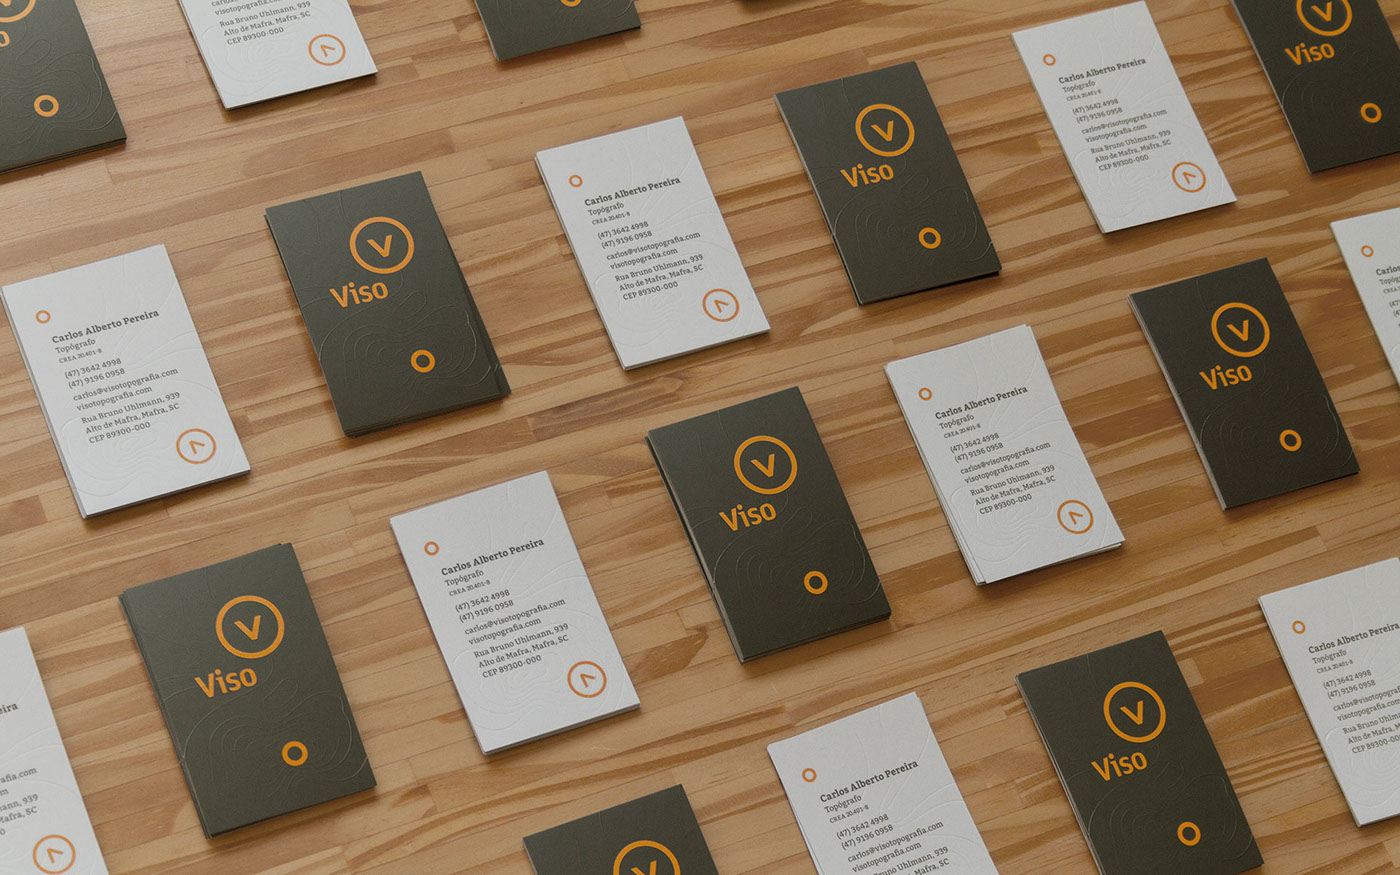 business card topography surveying emboss Level curves sober classy color logo